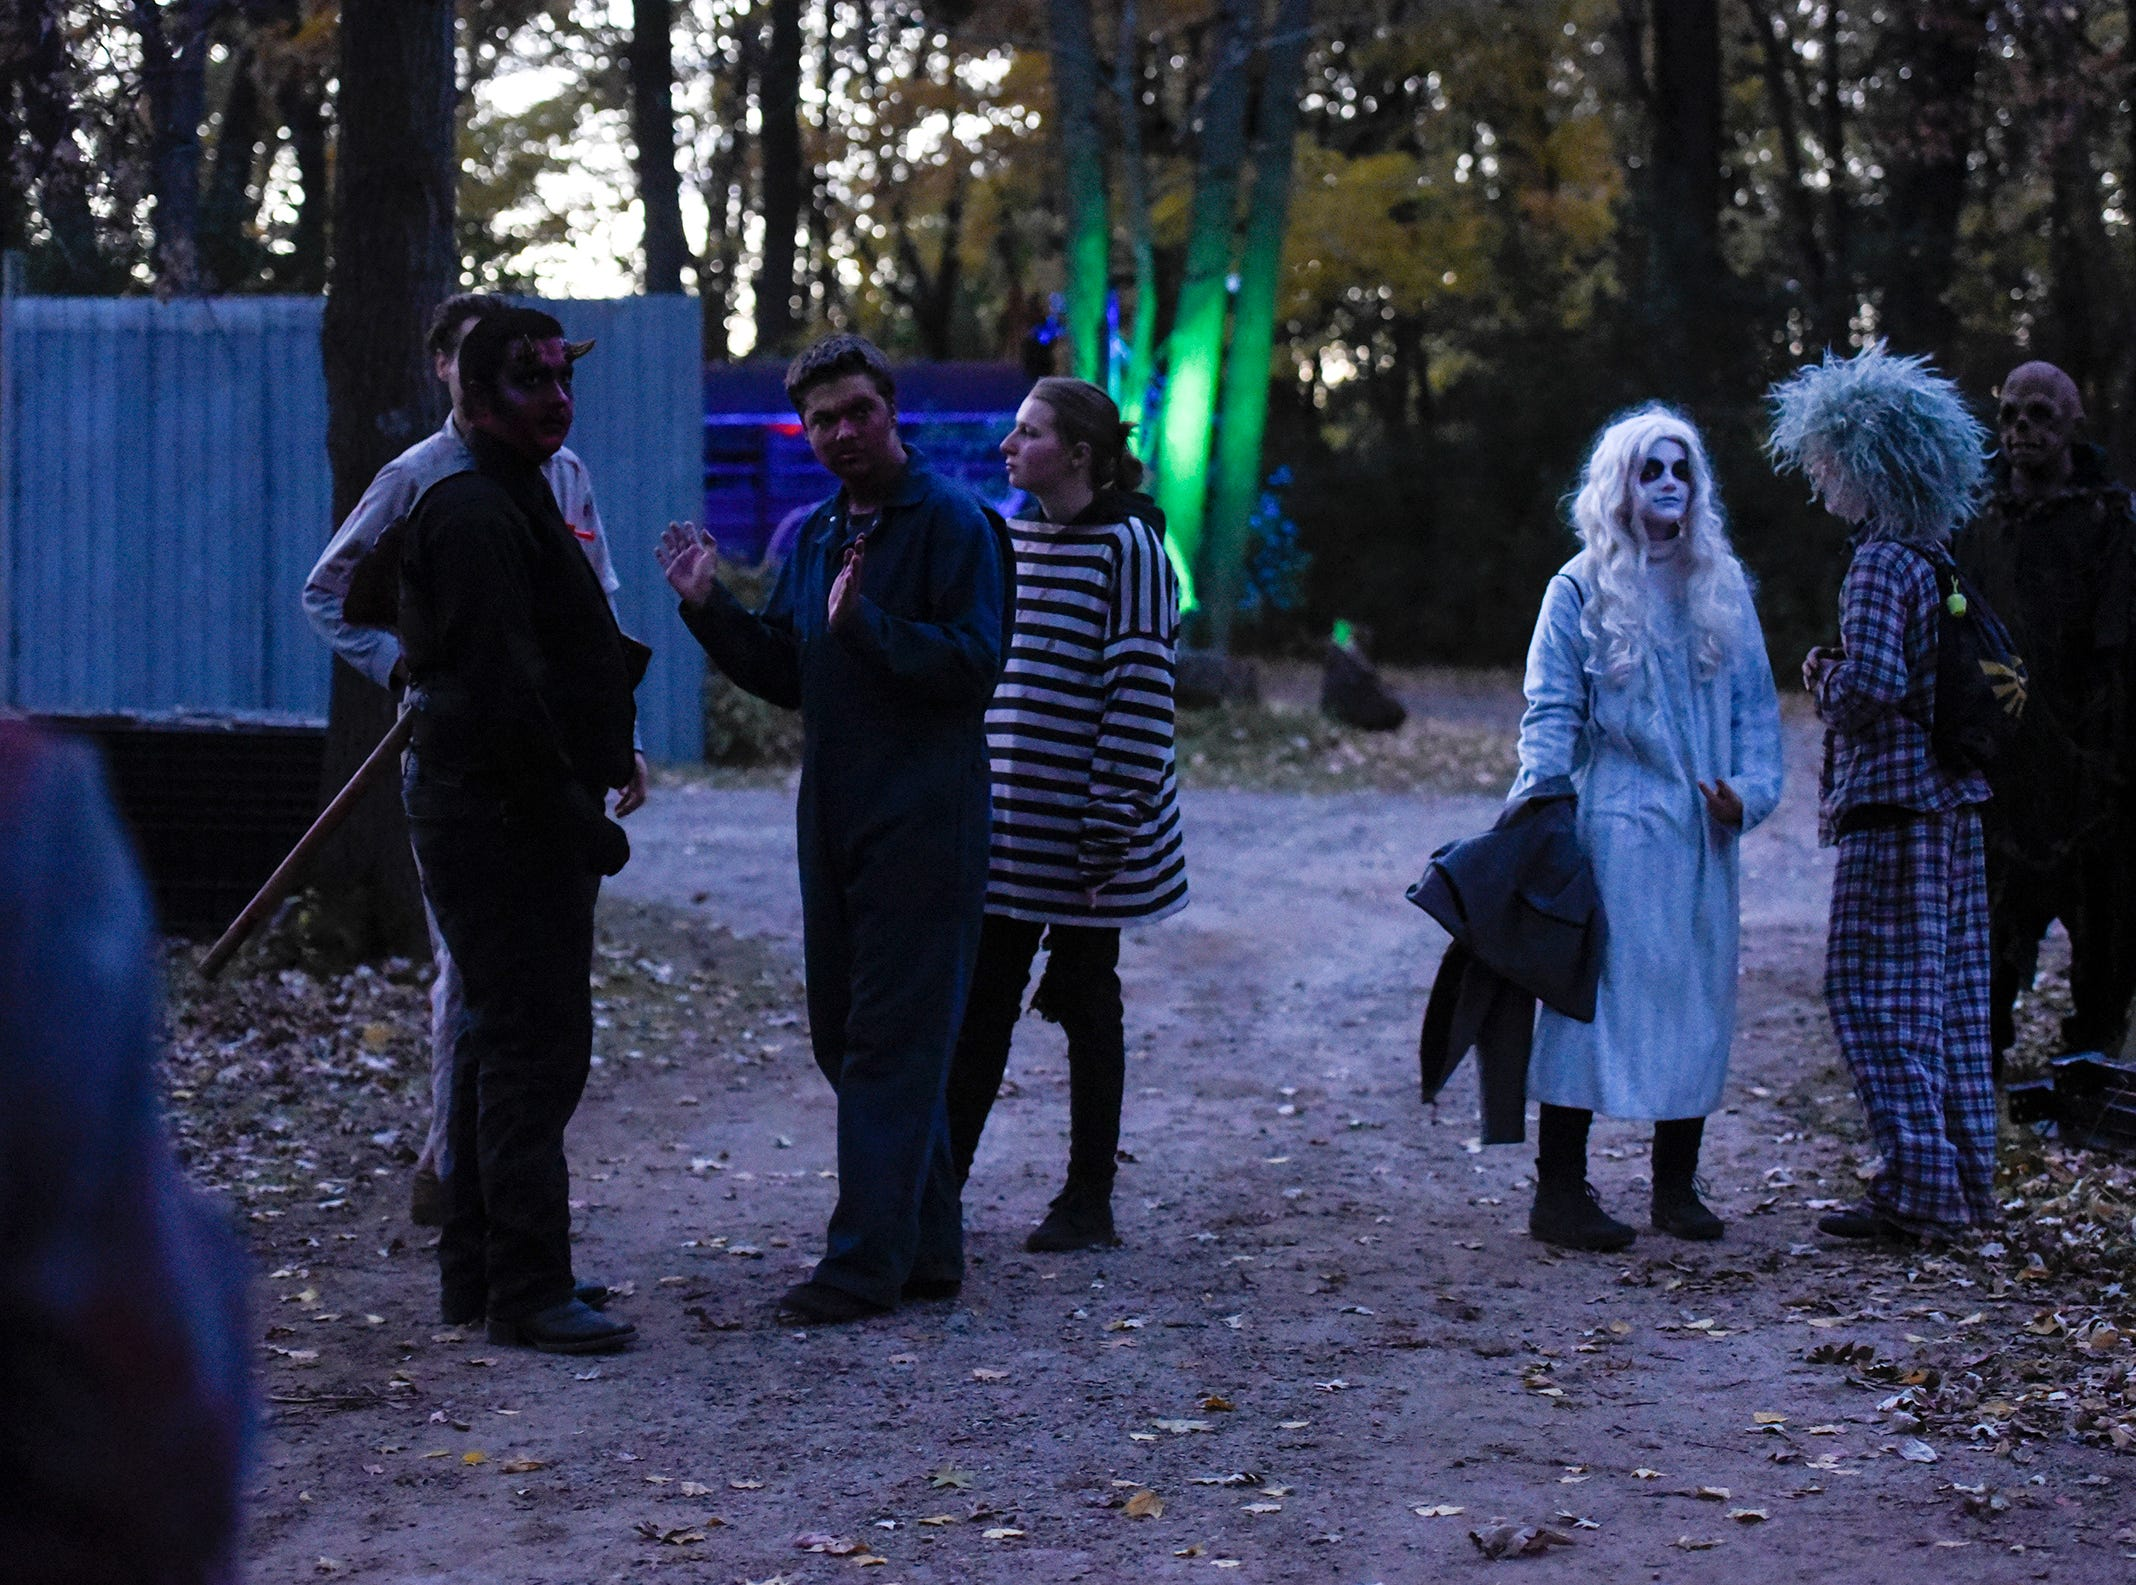 Characters gather before taking their places to start the evening's haunt Thursday, Oct. 18, at Molitor's Haunted Acres in Sauk Rapids.